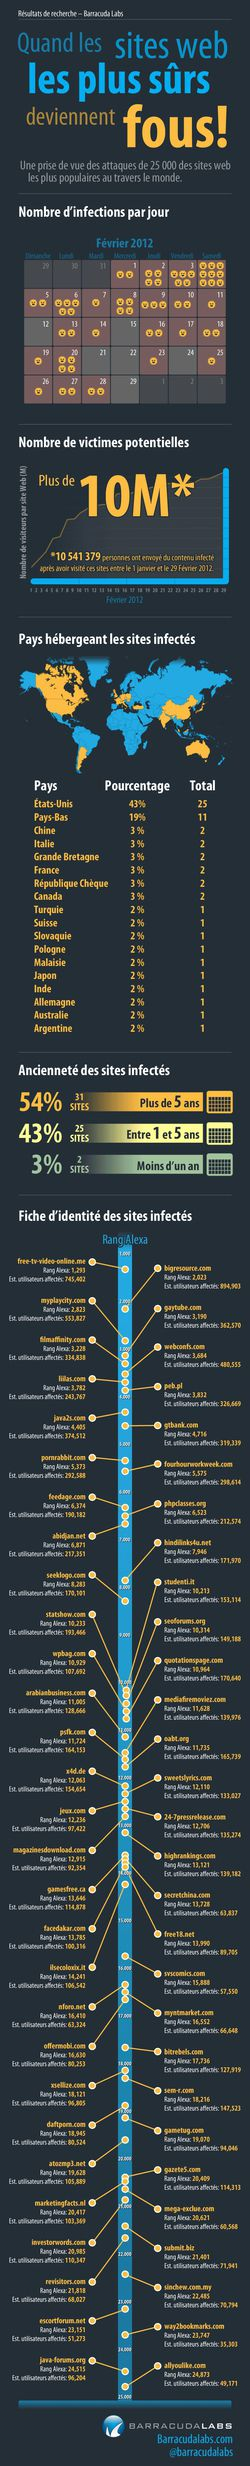 Infographie_Sites_Confiance_Menaces_Barracuda_Labs